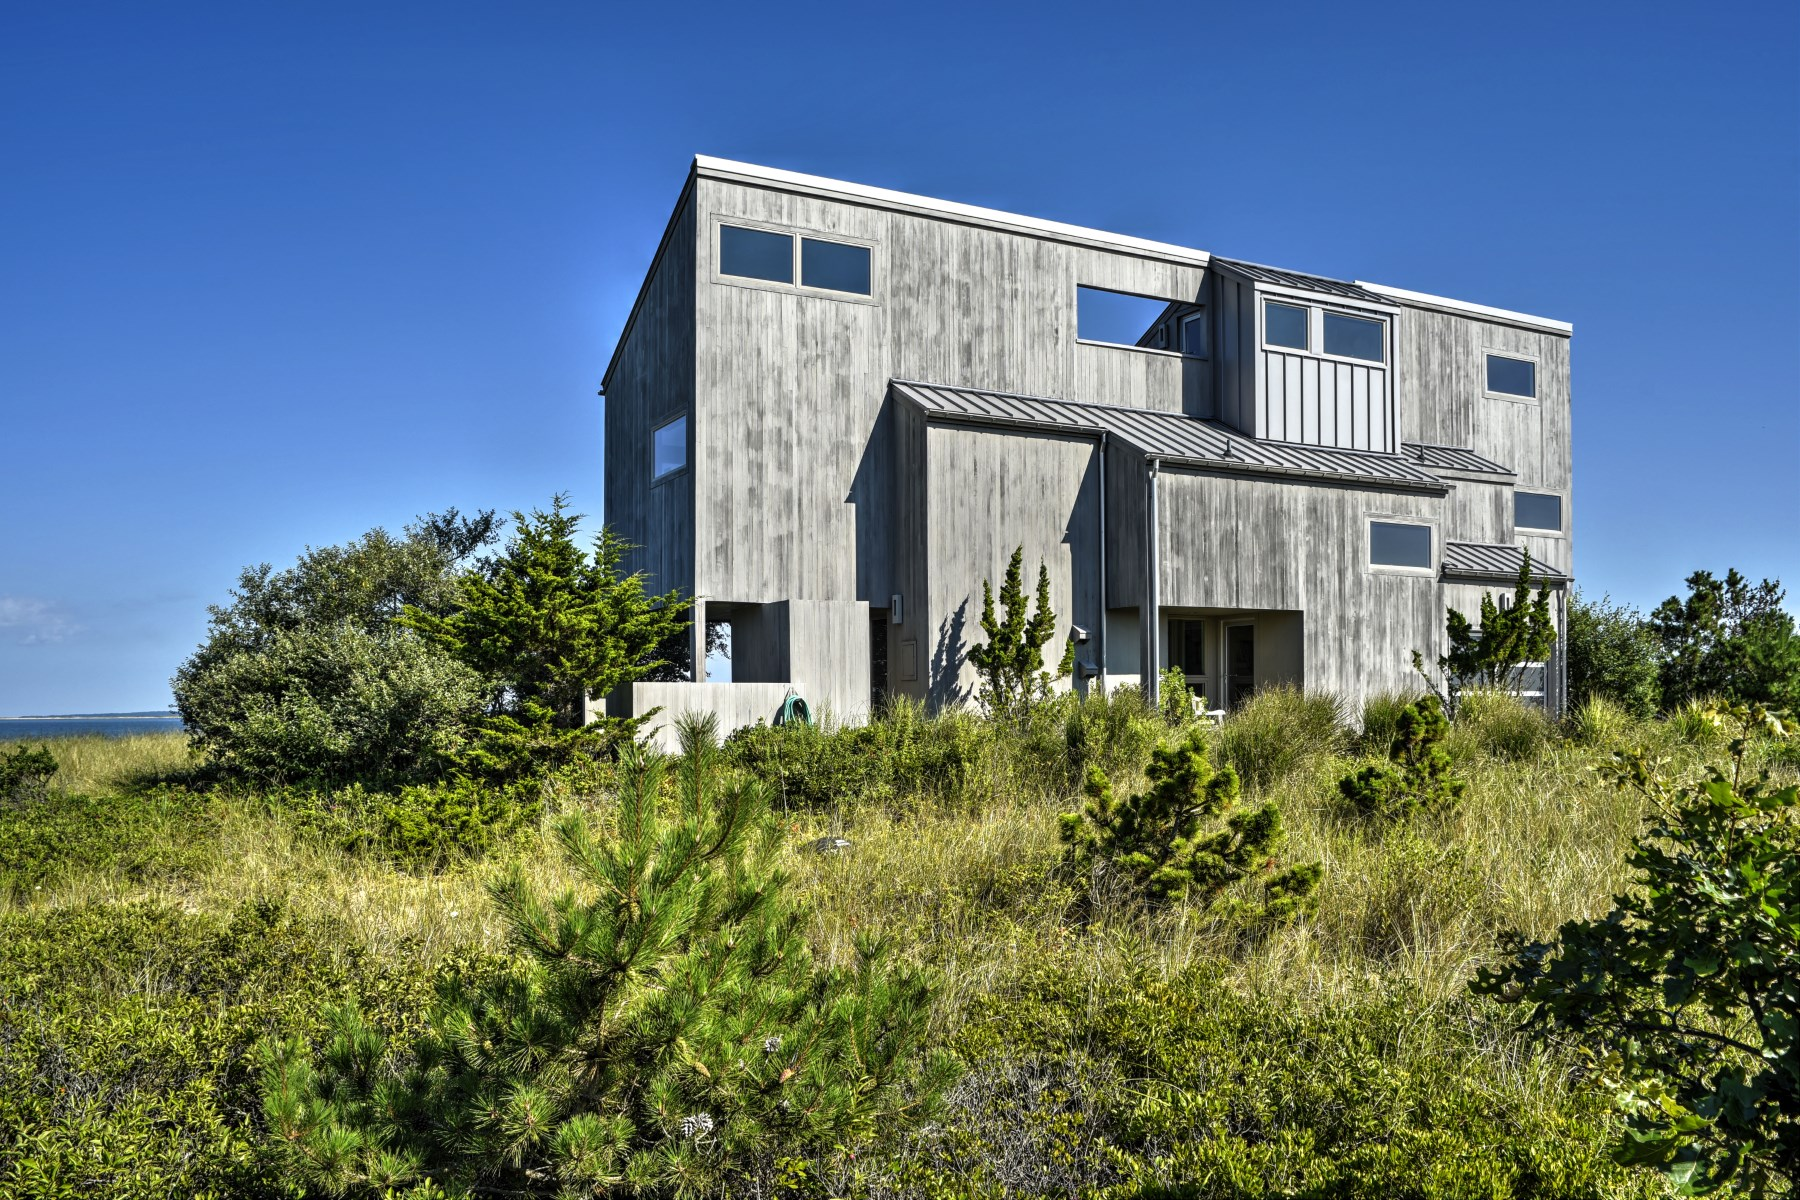 Single Family Home for Sale at Sexy Private Amagansett Beach House 52 Private Road, Amagansett, New York, 11930 United States